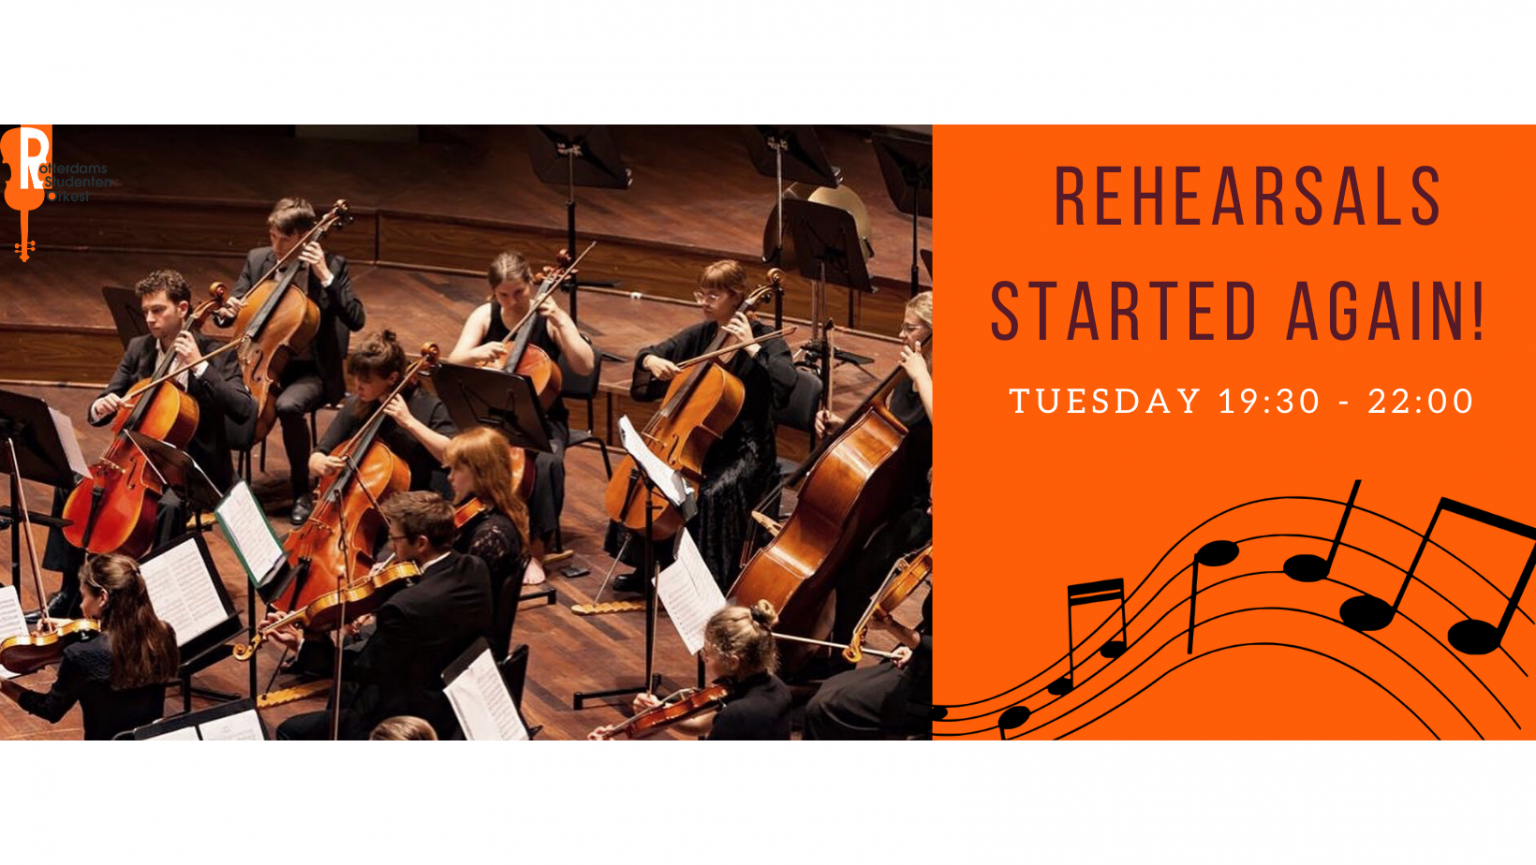 Rehearsals started again, Tuesday 19:30-22:00